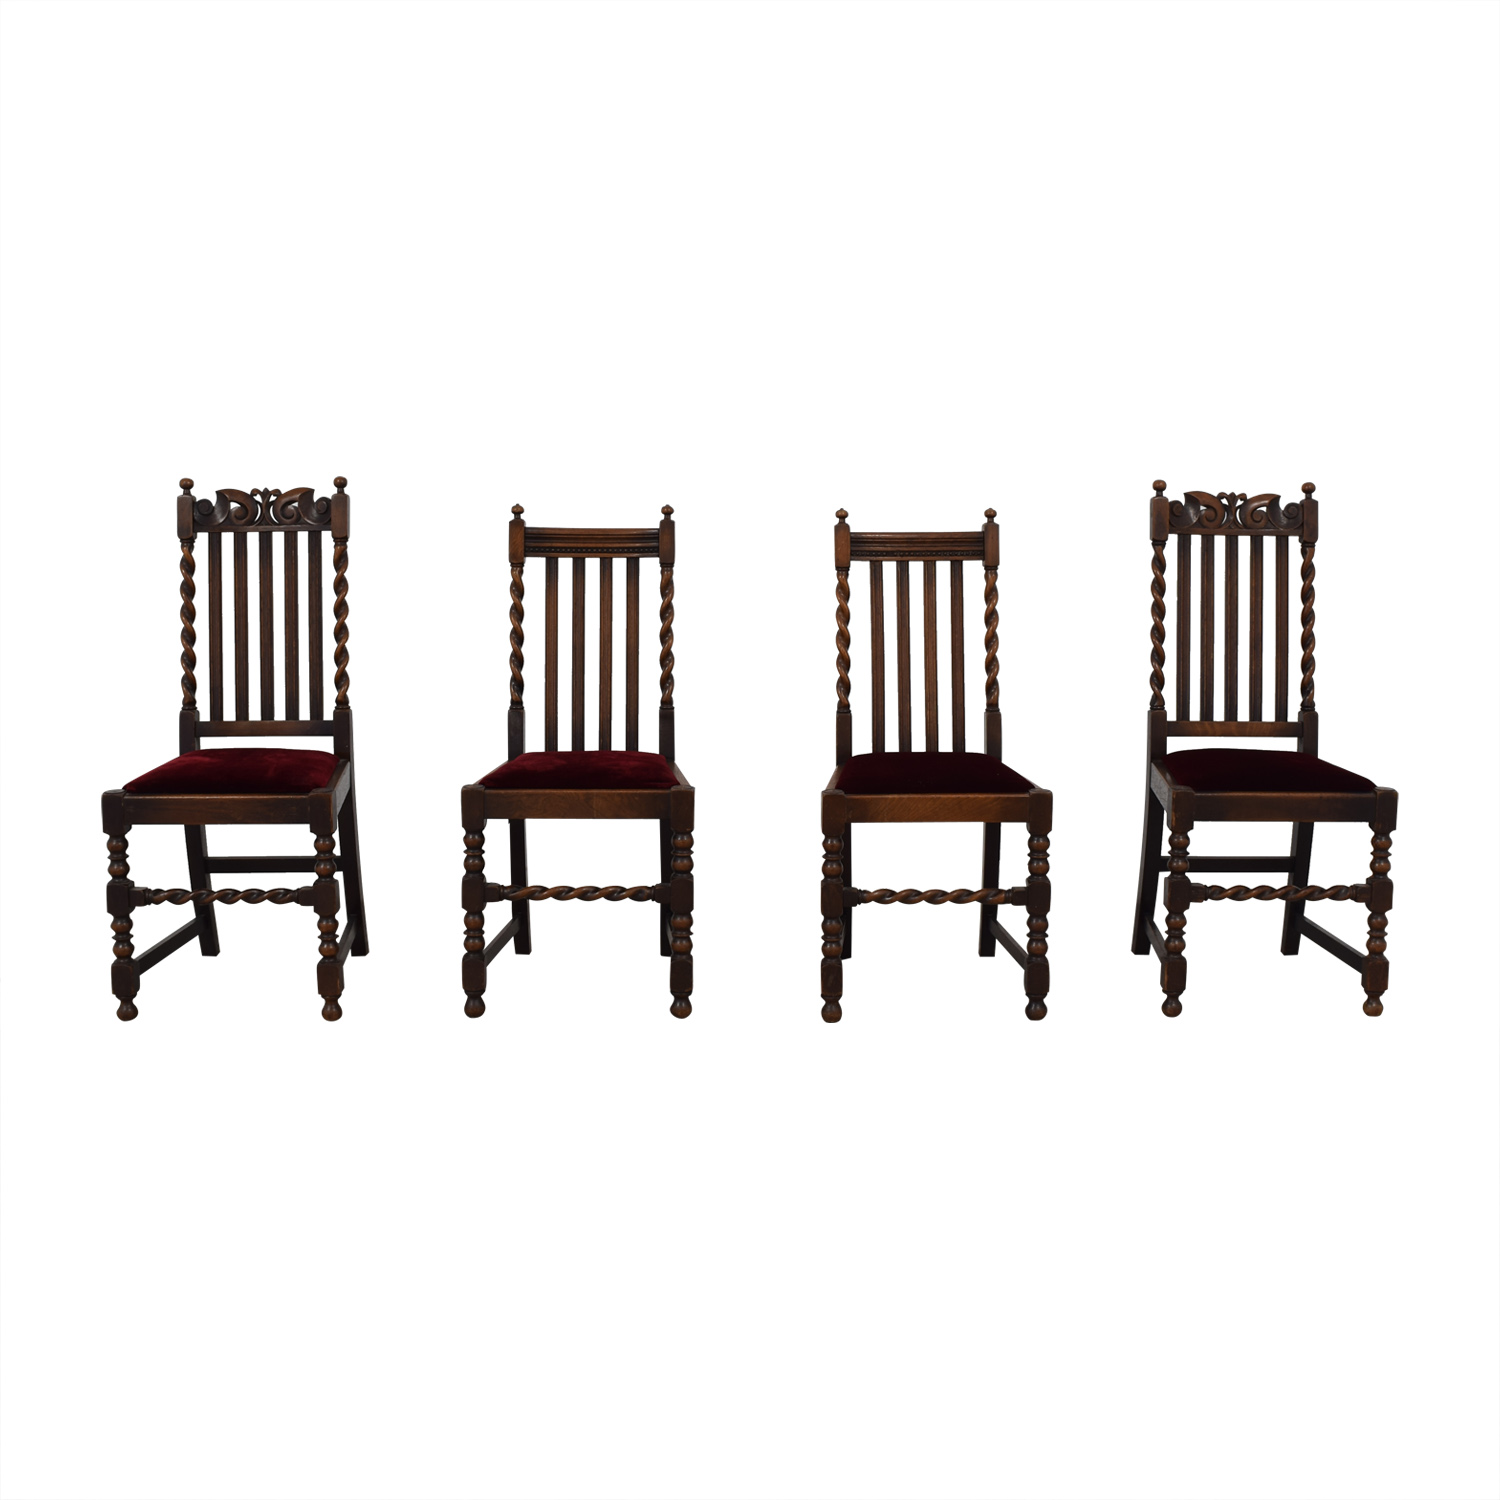 Jacobian Barley Twist Chairs used